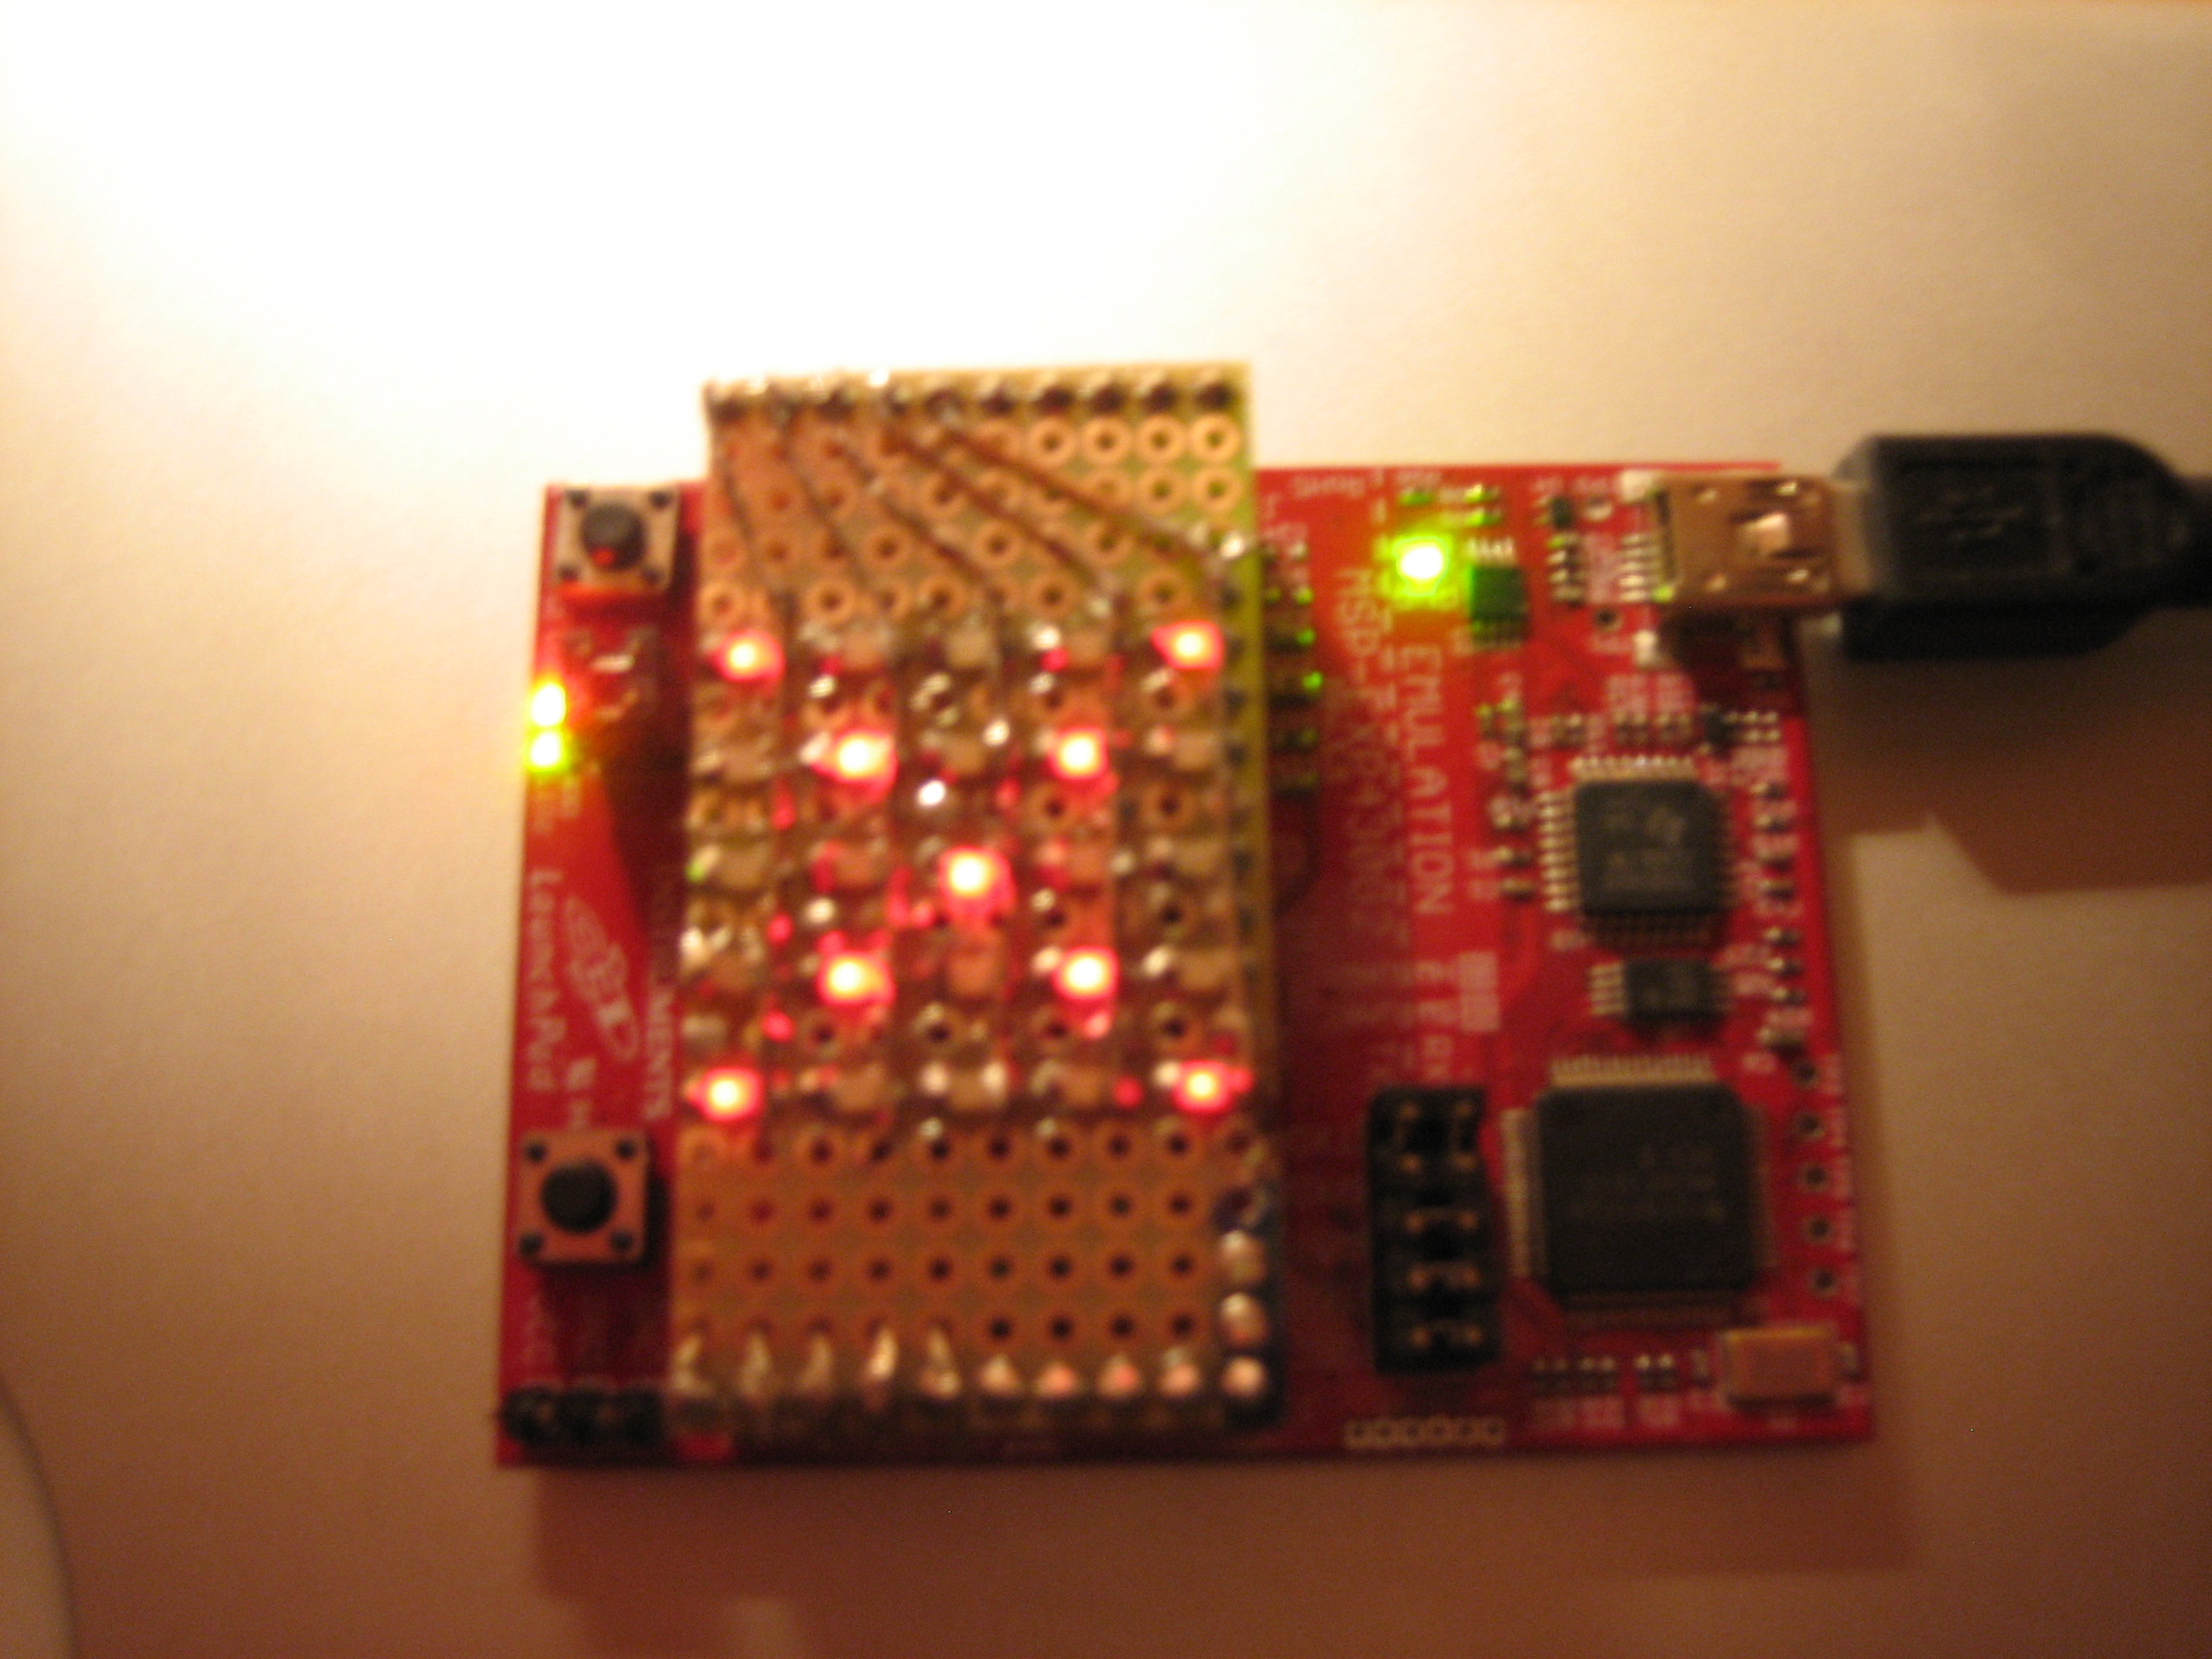 projects:4e4th:boosterpacks:led5x5_auf_launchpad.jpg